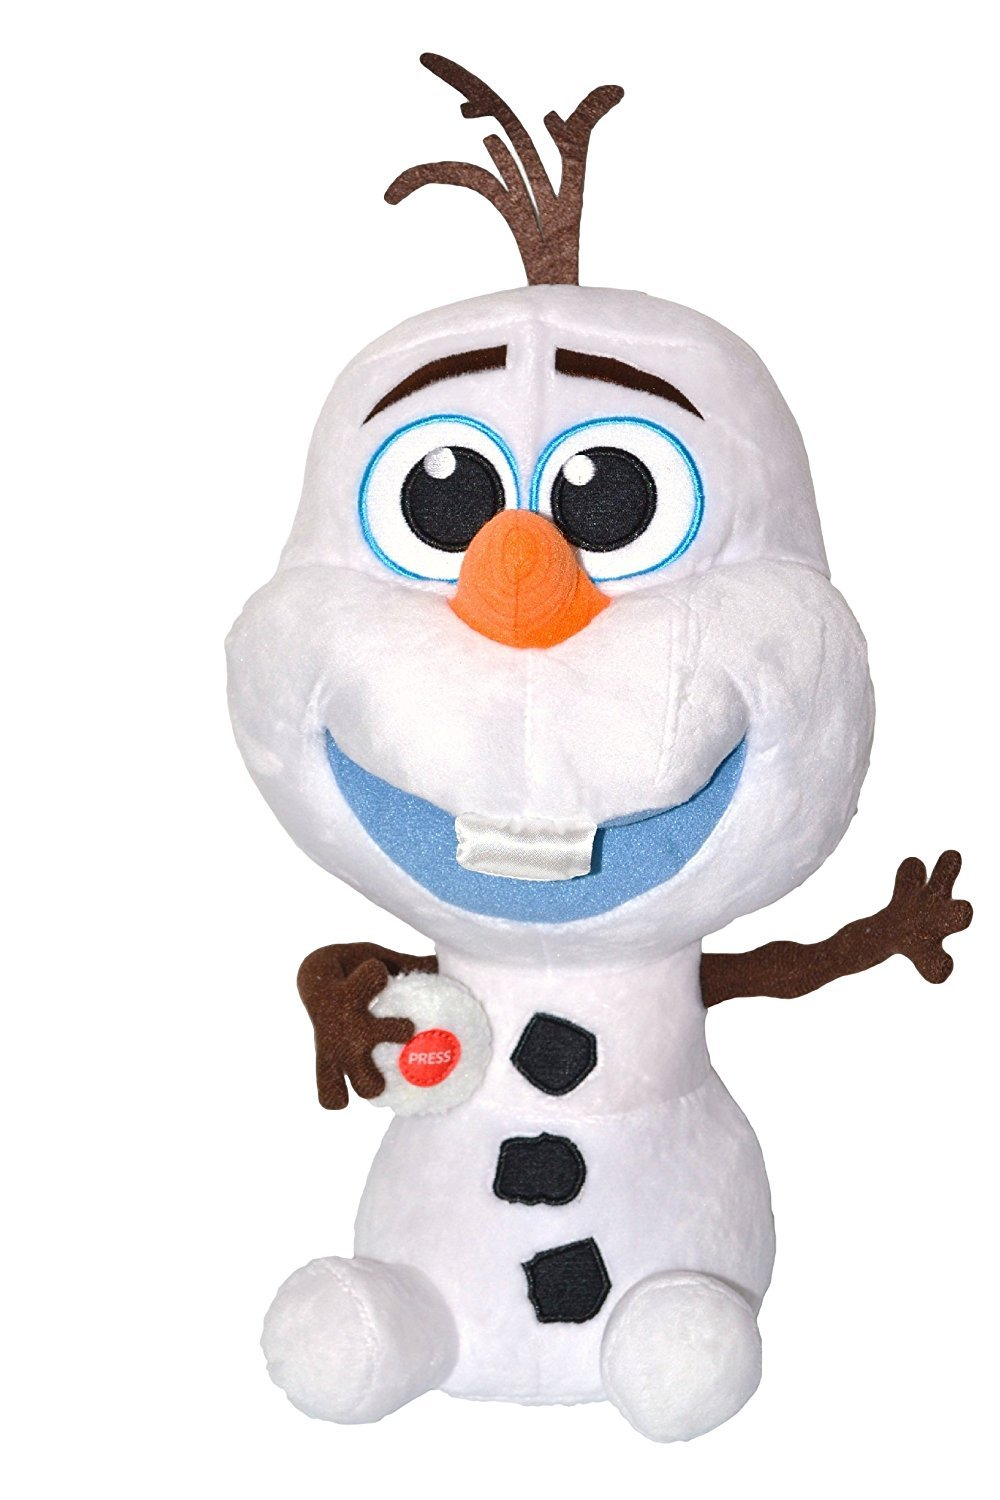 """Disney Frozen Press Button Plush Olaf """"Baby"""" Snowman Saying """"I Love You"""". Total 14"""" Tall. Japan Import."""